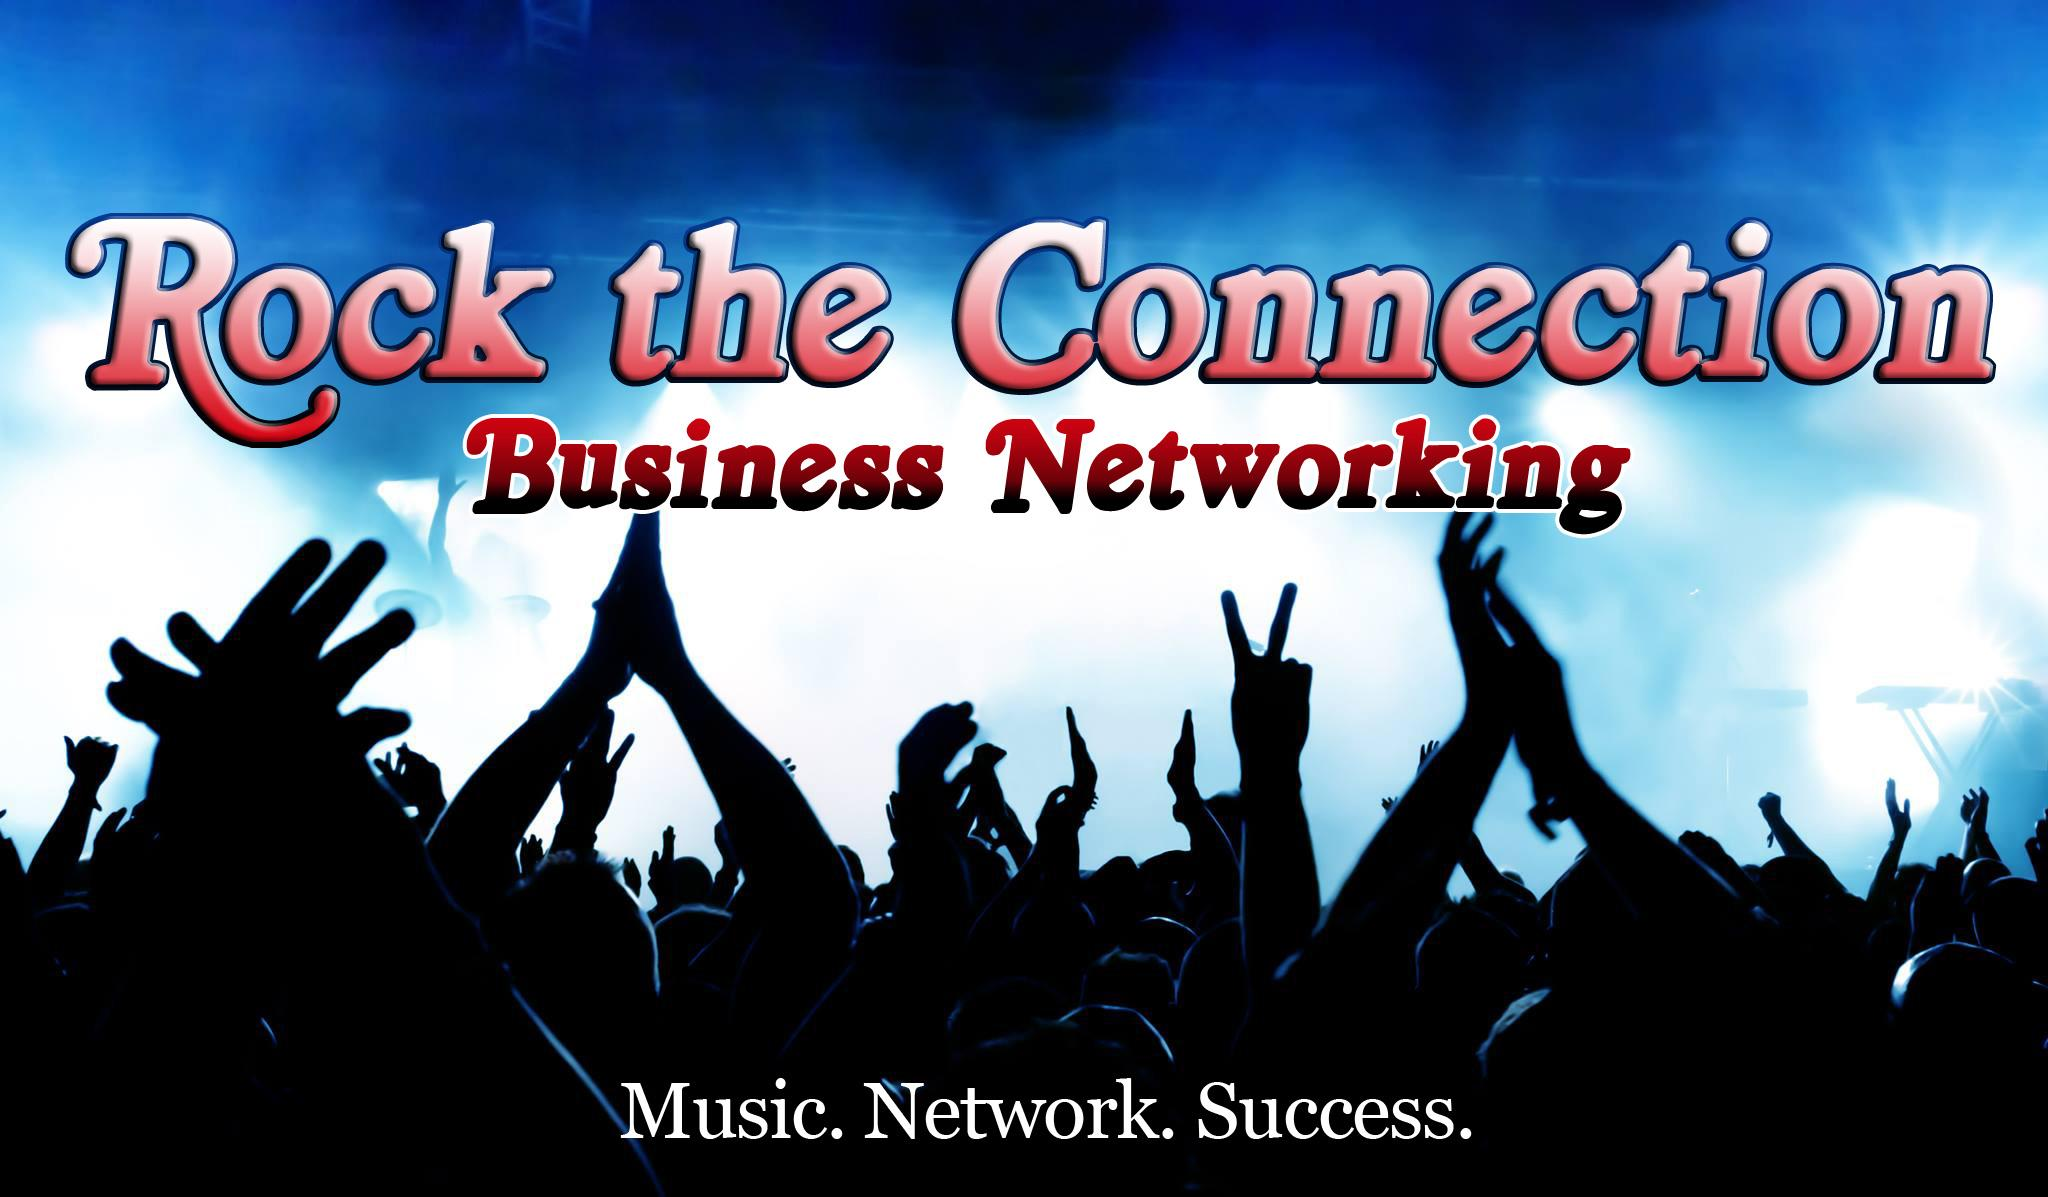 ROCK THE CONNECTION Business Networking Event